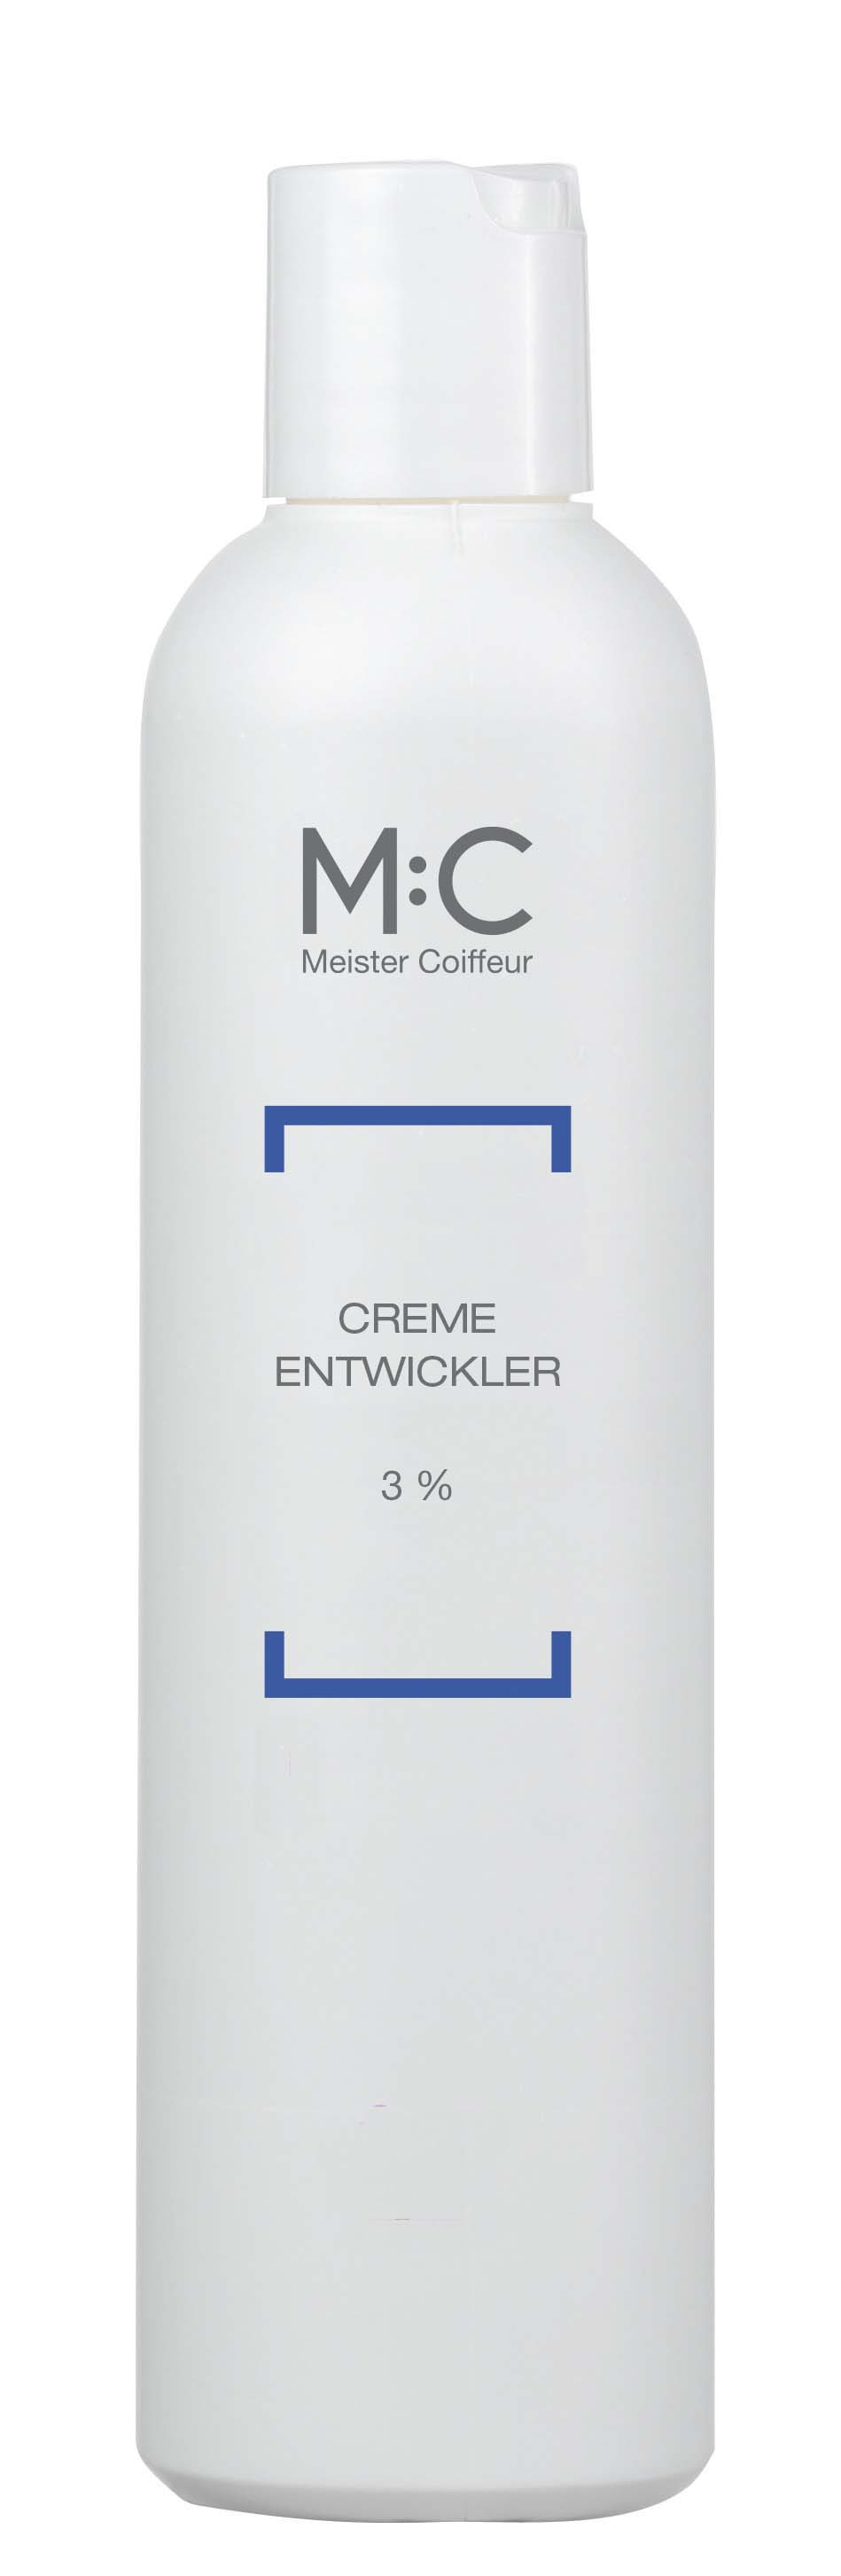 M:C Cream Developer 3,0% C 250 ml